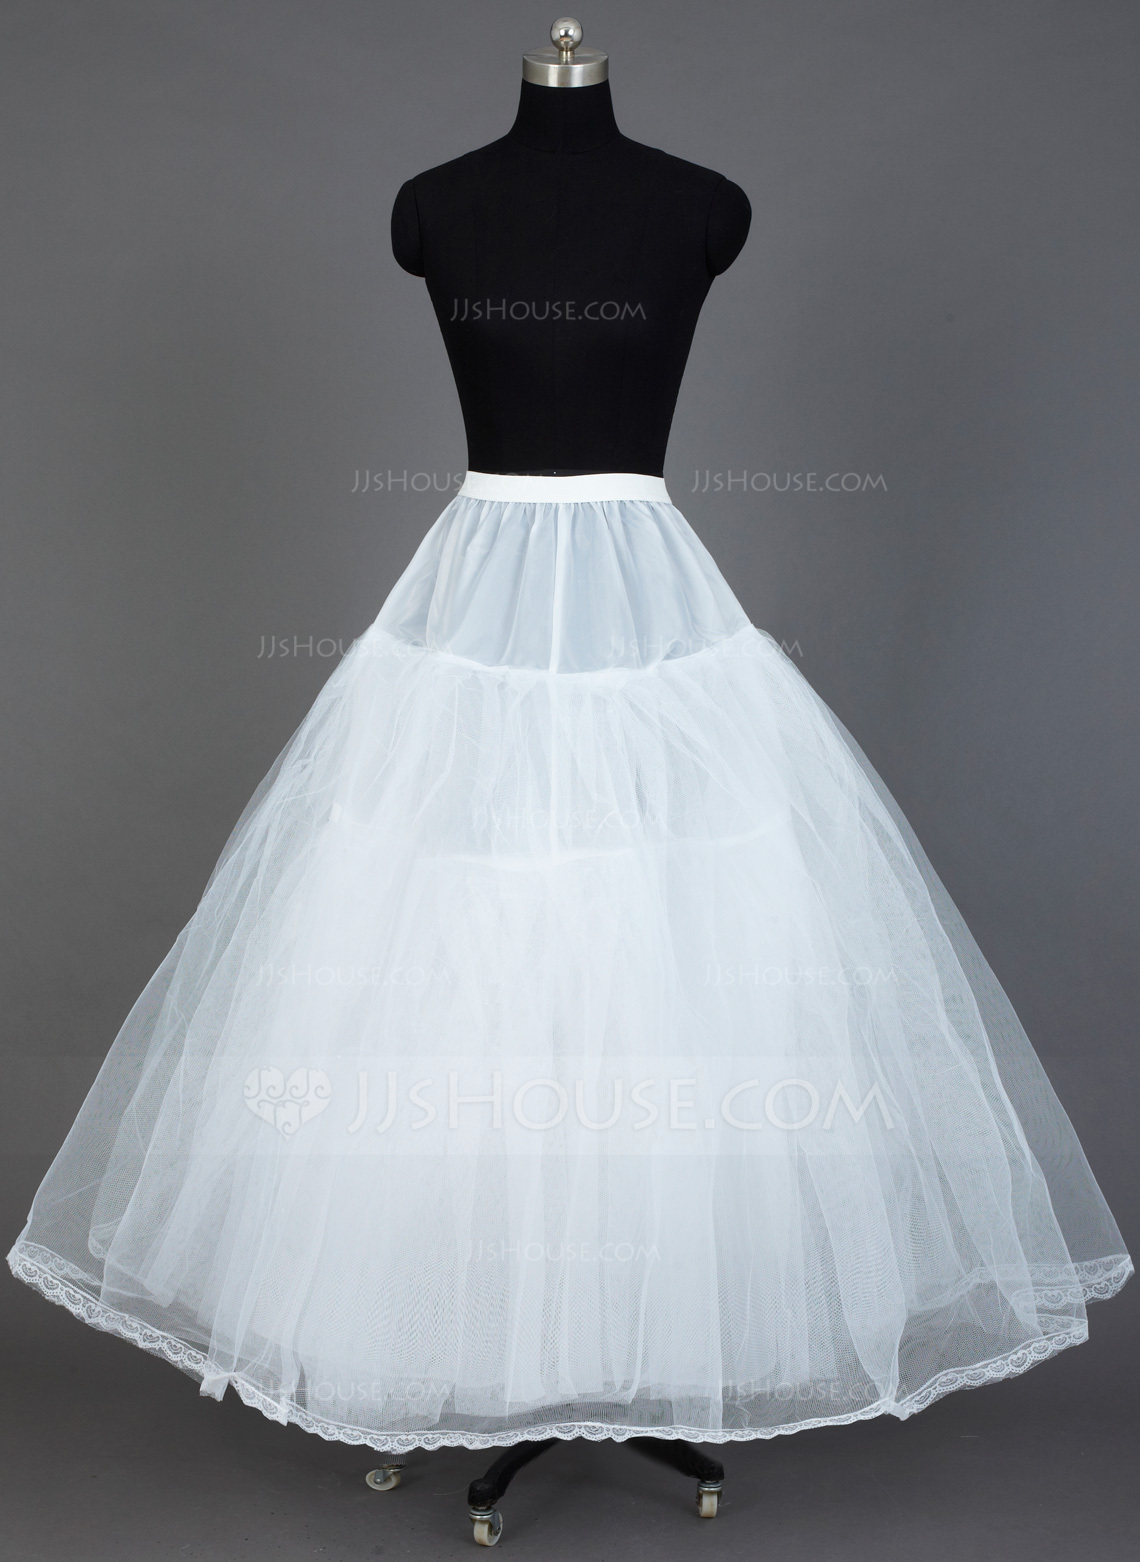 Women Tulle NettingTaffeta Floor Length 3 Tiers